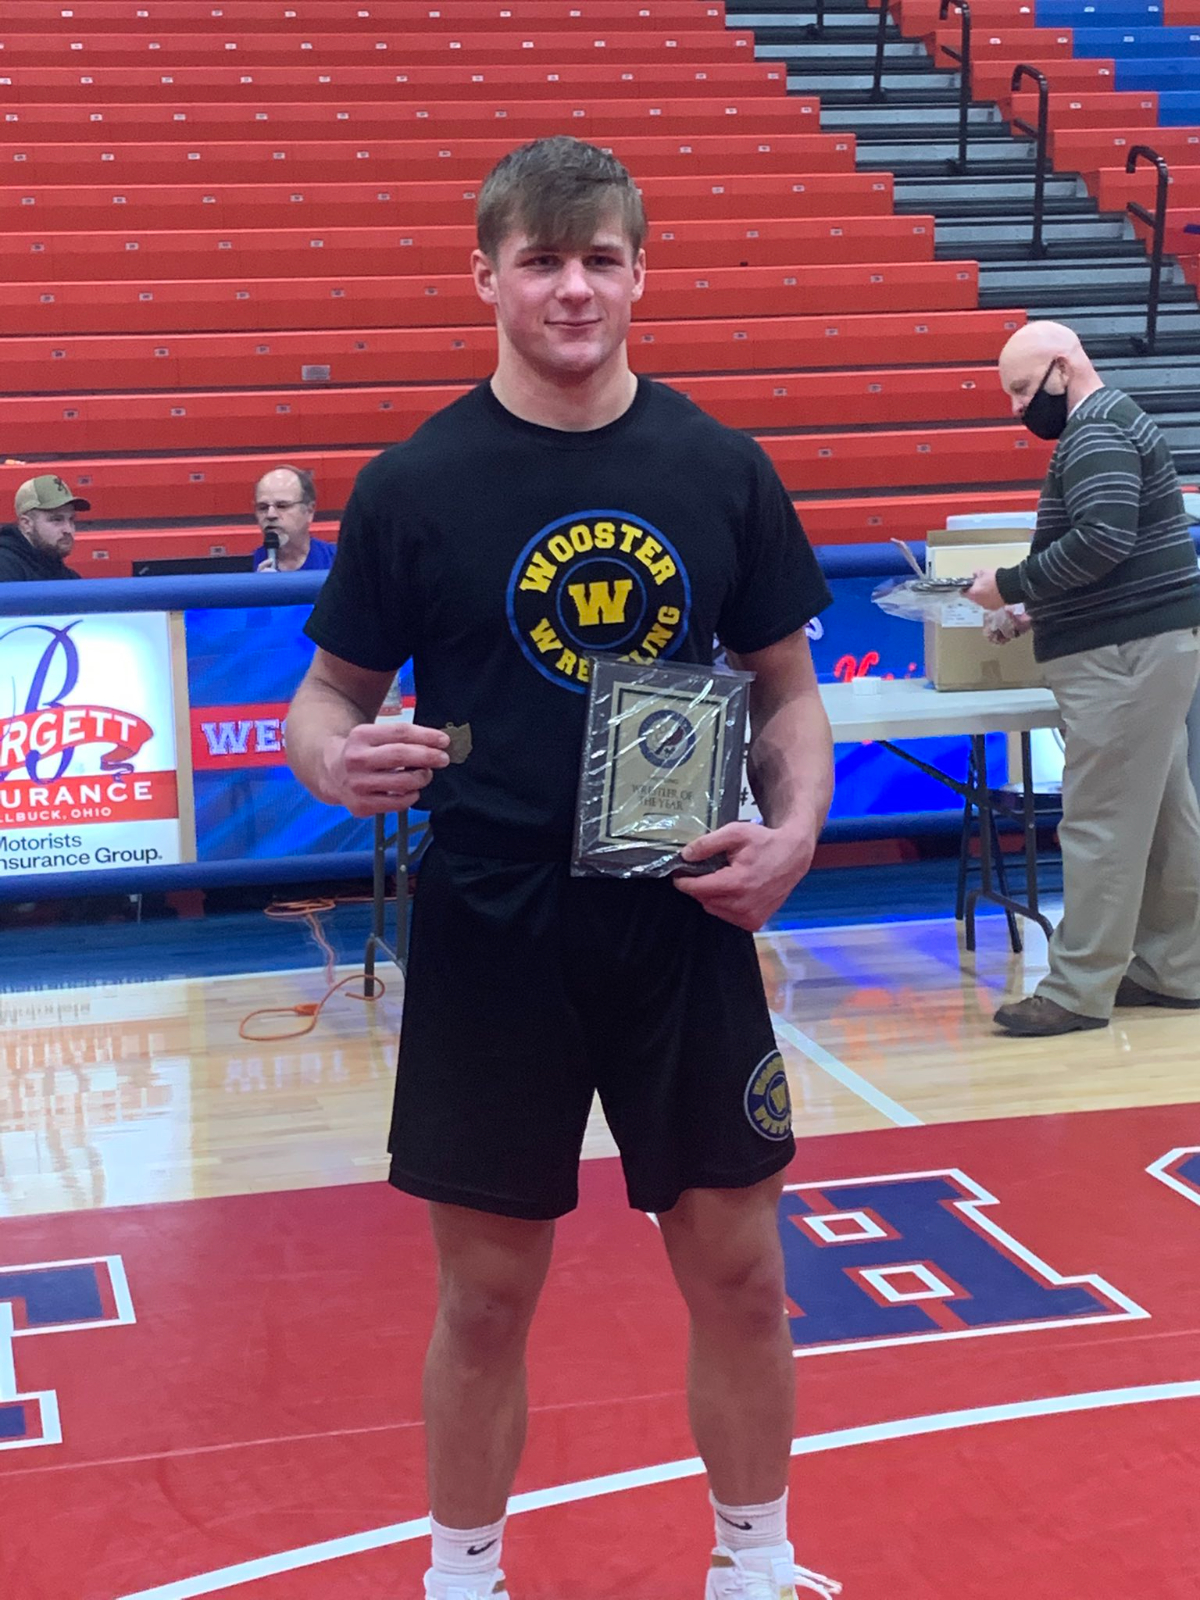 Lyons Competes at State Wrestling Tournament